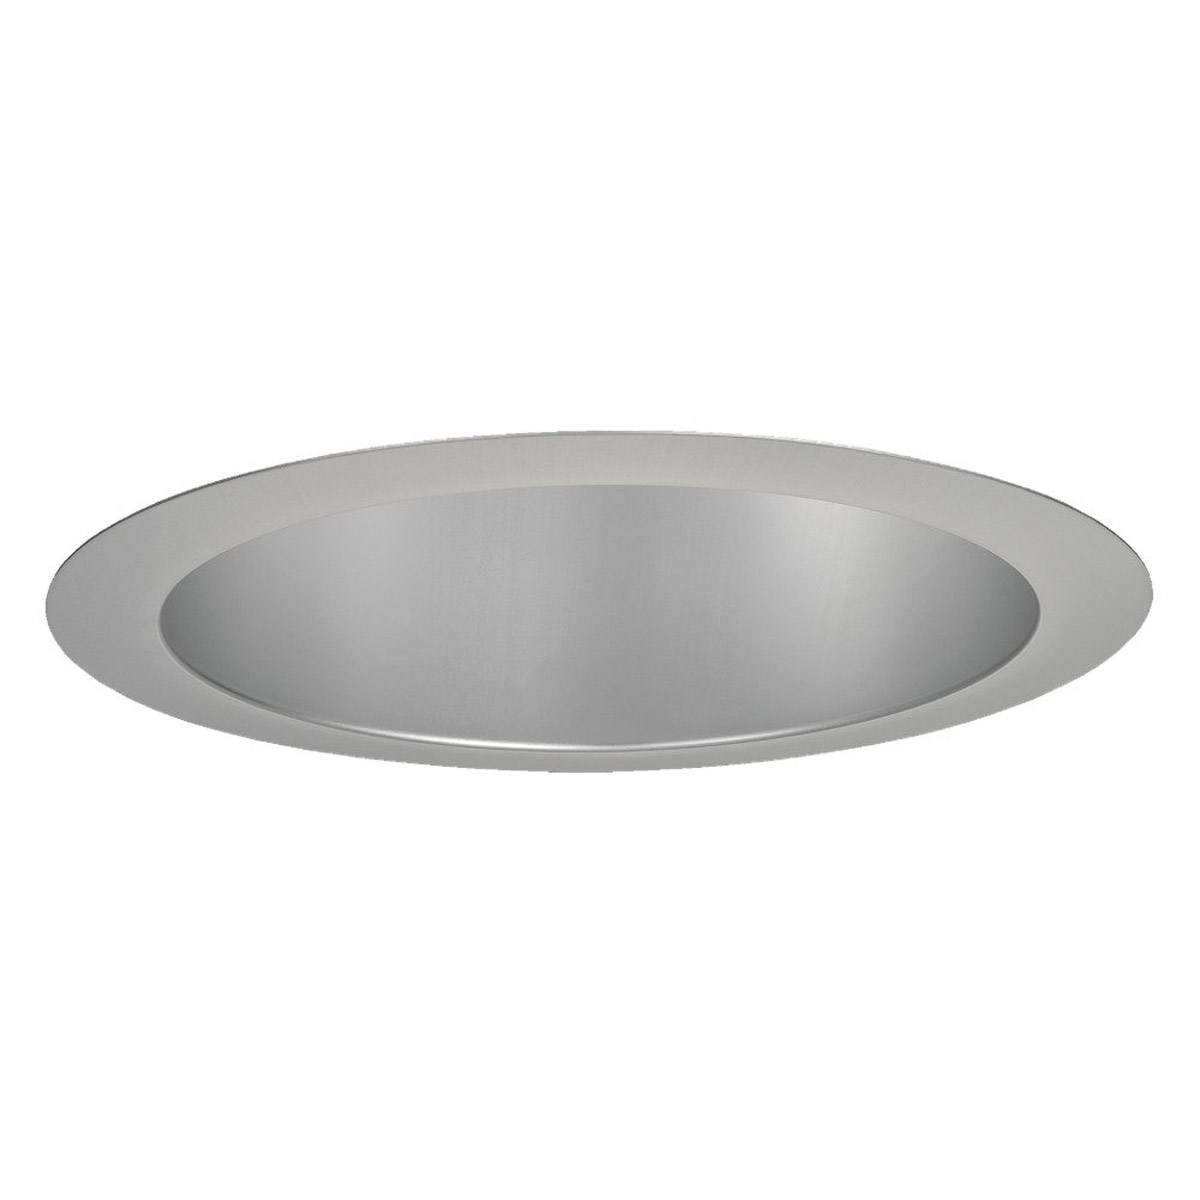 Sea Gull Lighting Signature Recessed Trim Only in Satin Nickel 11132AT-849